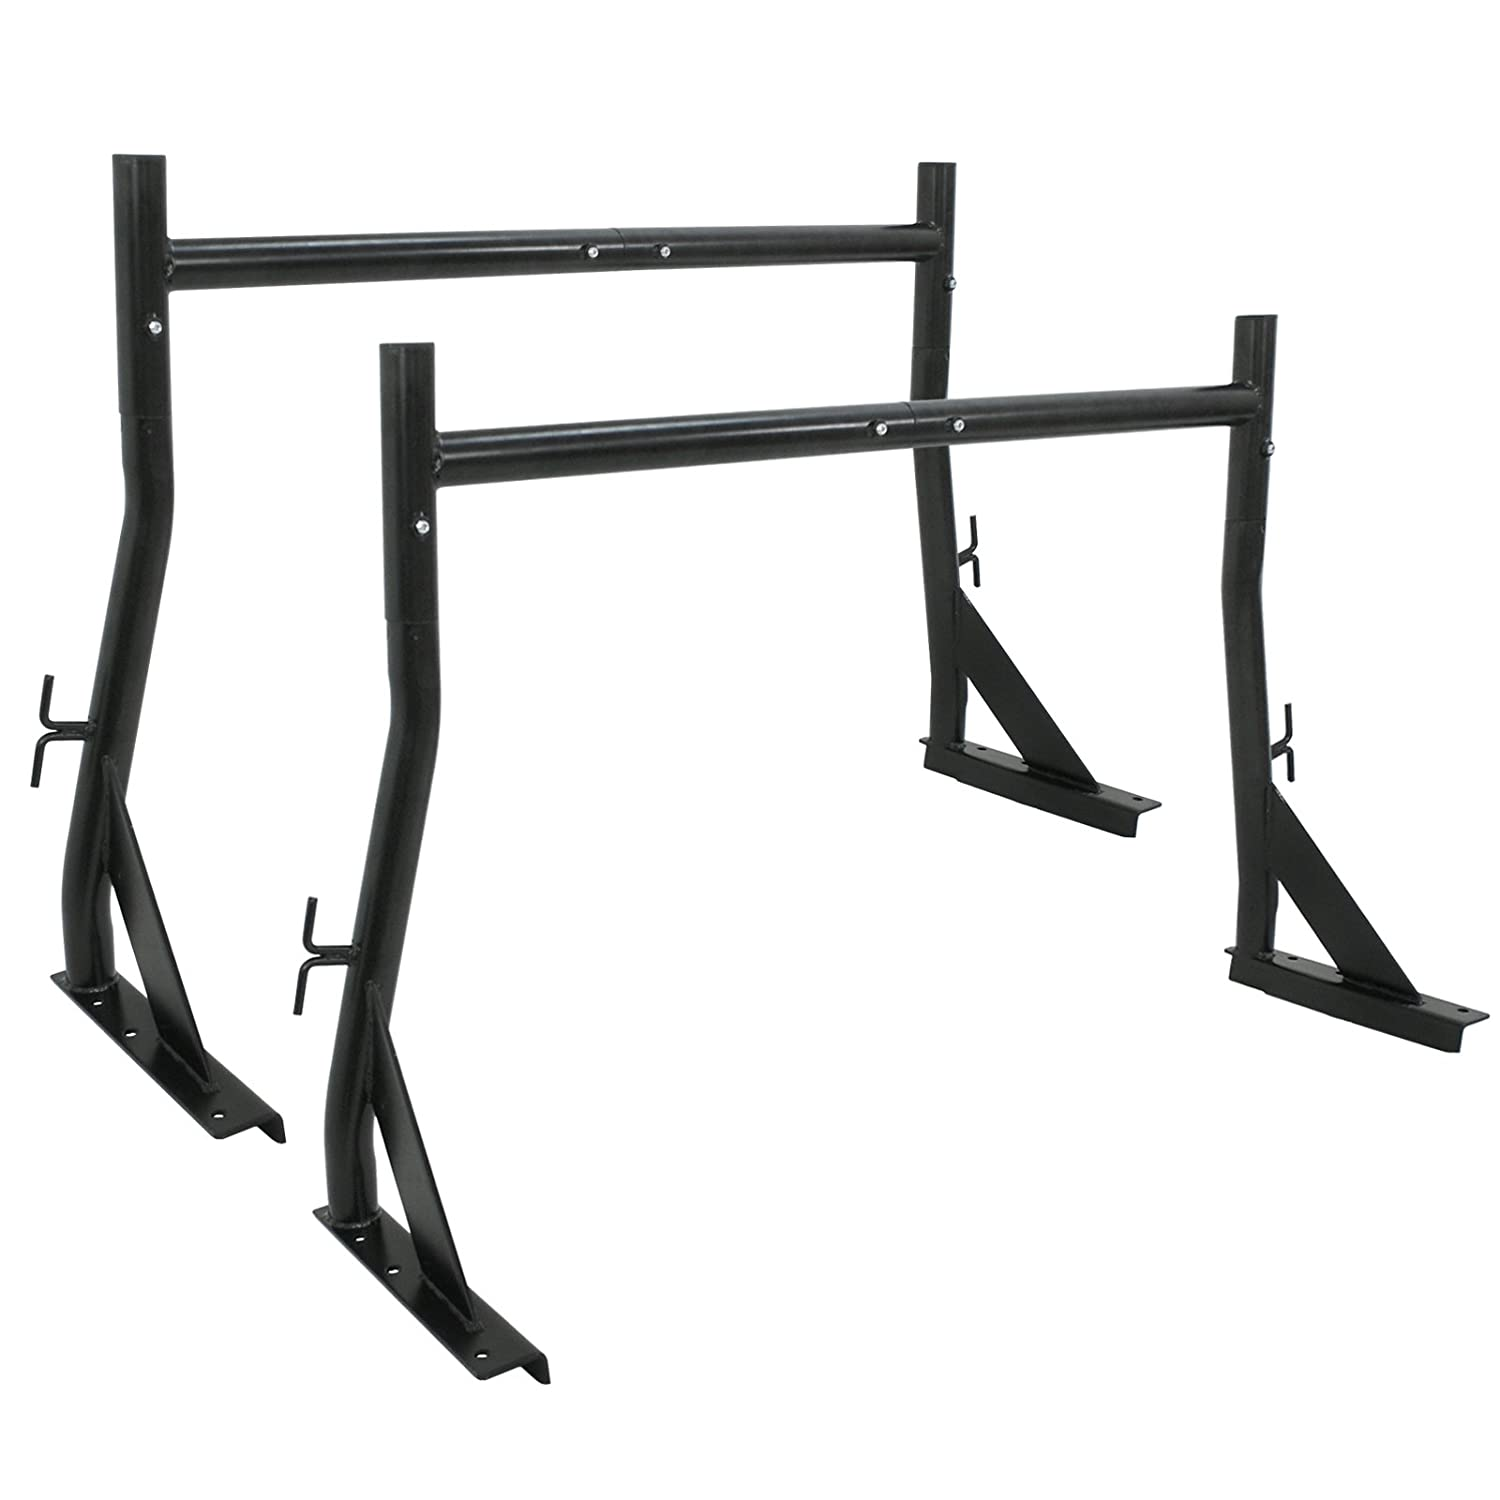 ZENY Set of 2 Bars Pickup Rack Truck Ladder Rack 650LB Adjustable Universal Utility Contractor Lumber Utility,Steel